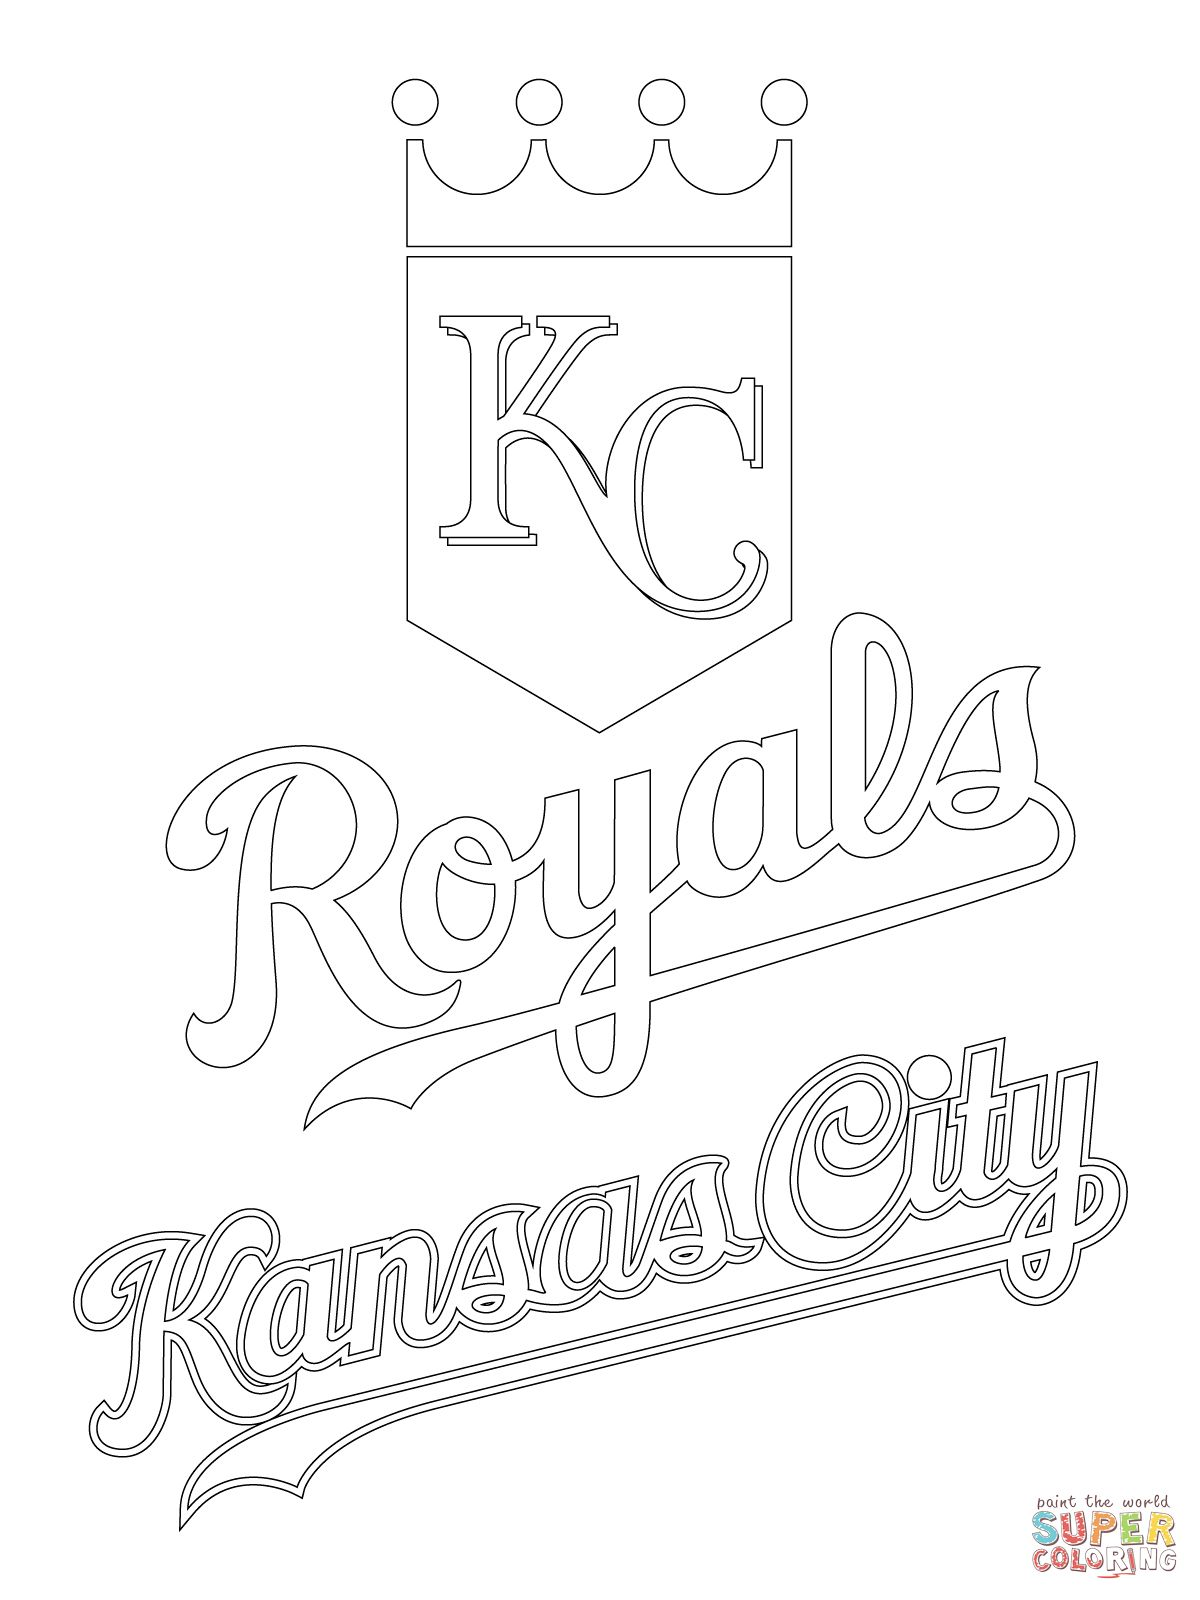 Kansas City Royals Logo Super Coloring Coloring Pages Kansas